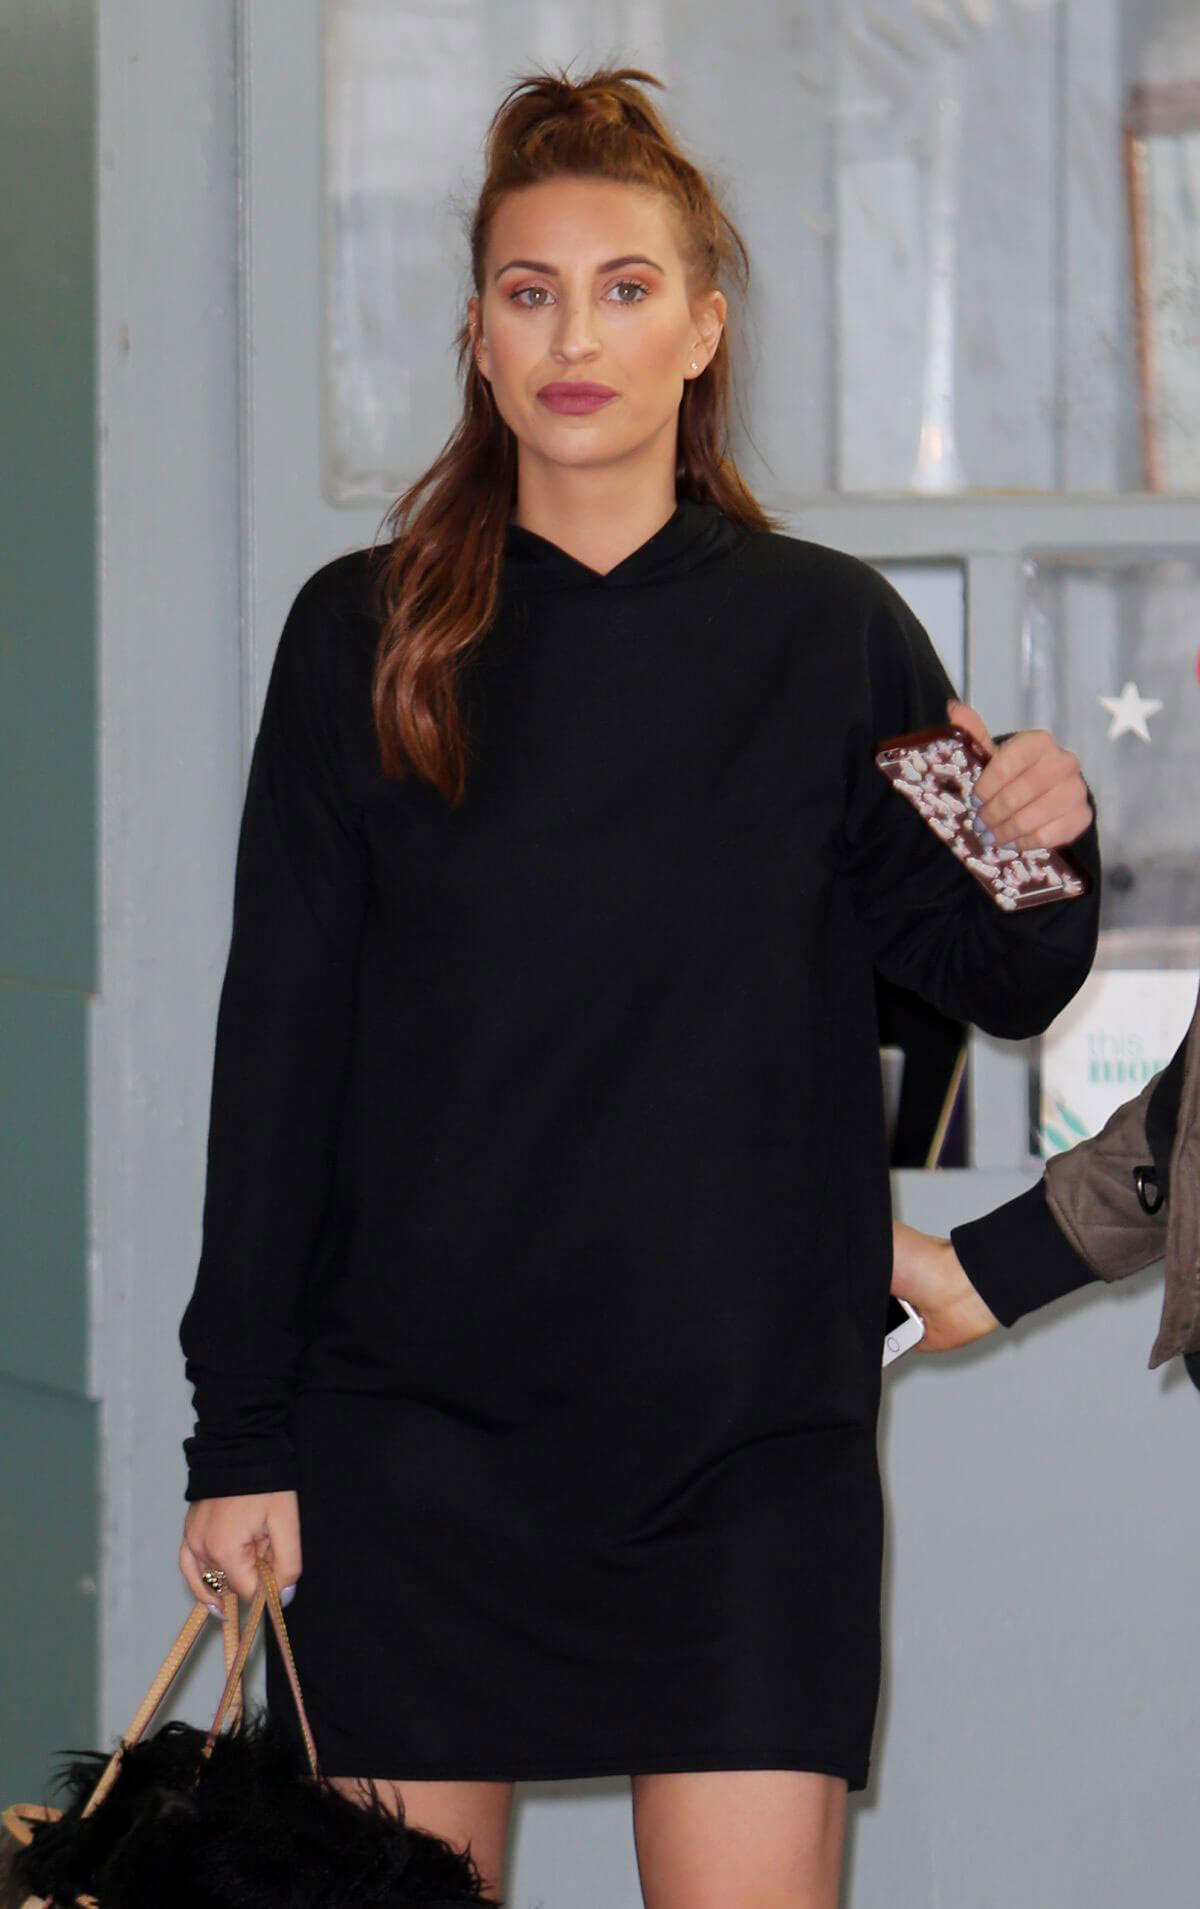 Ferne McCann Stills Leaves ITV Studios in London